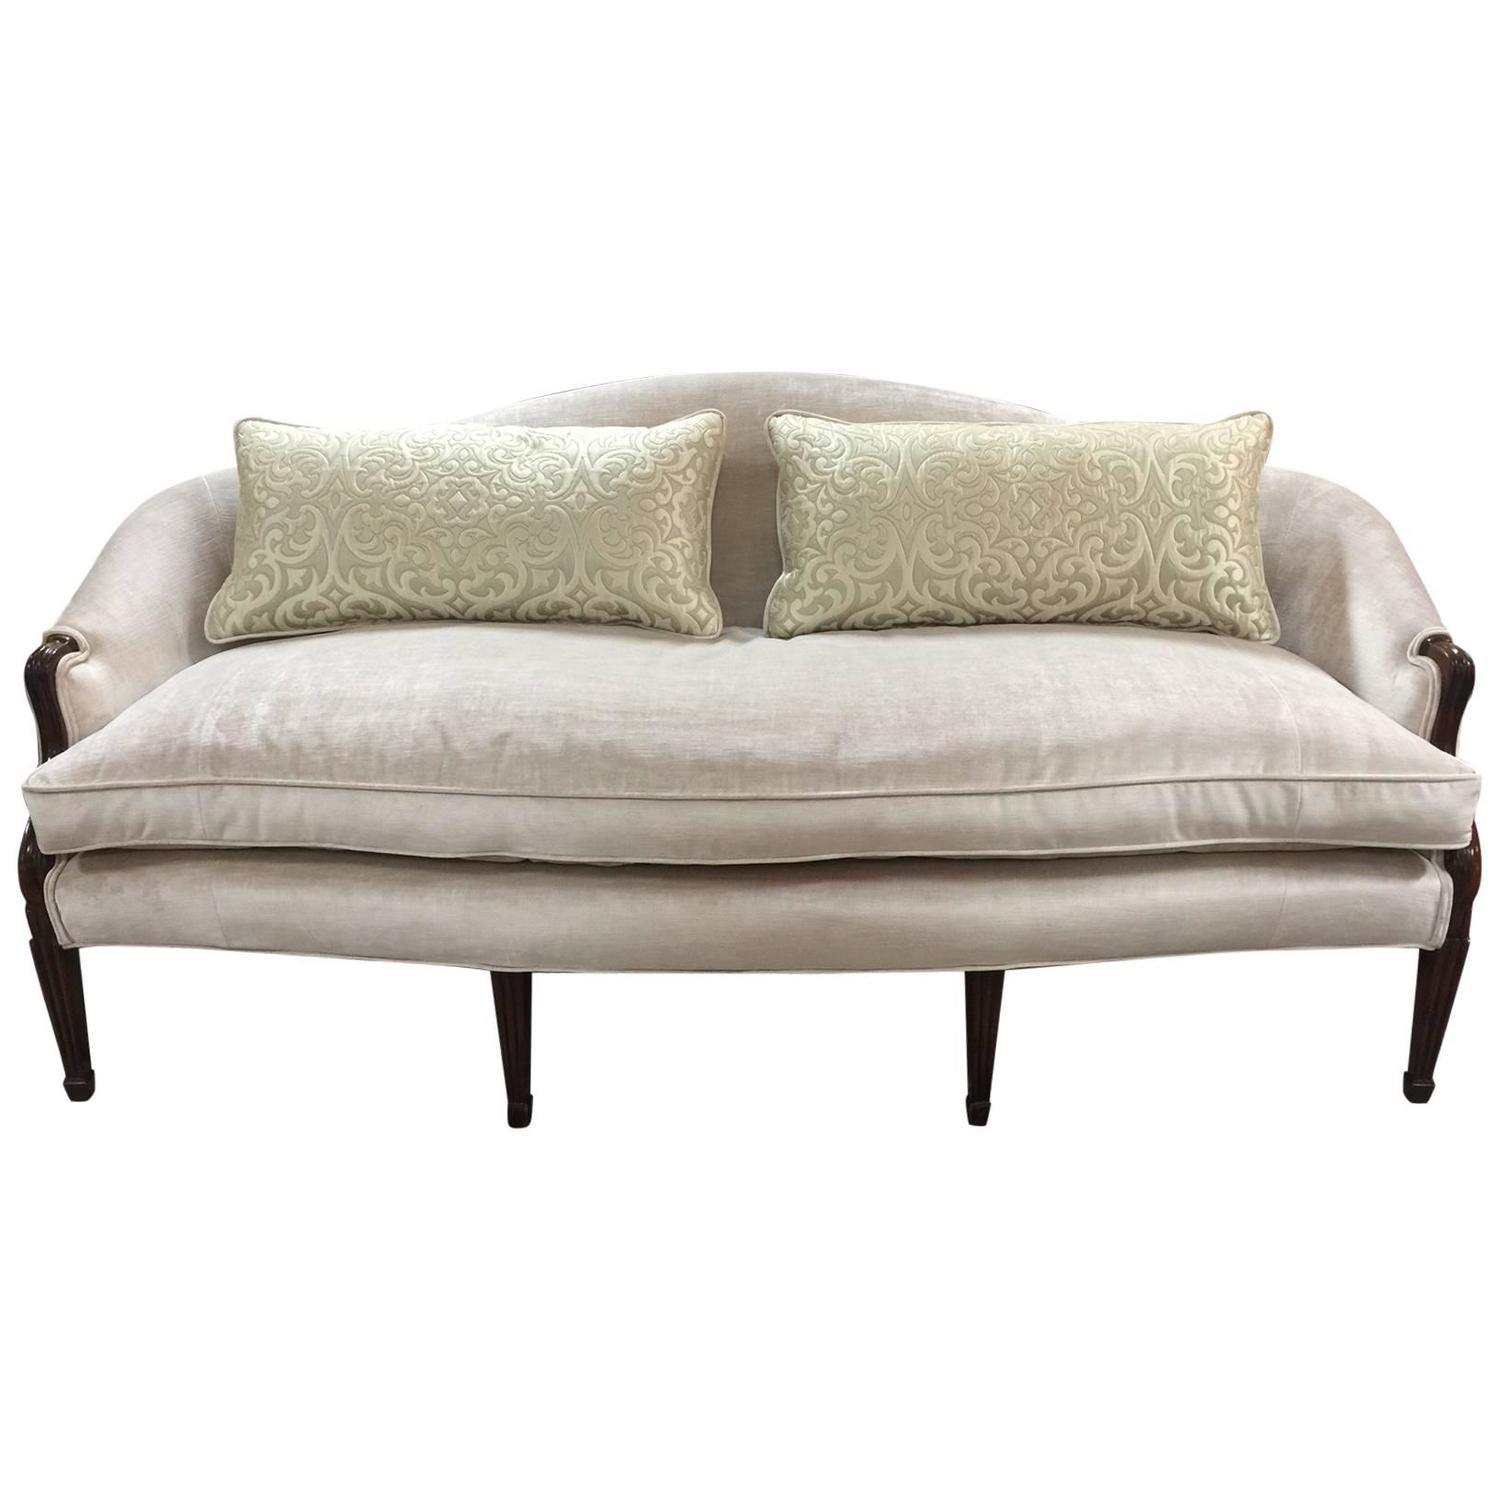 French Style Sofa In Champagne Velvet At 1stdibs